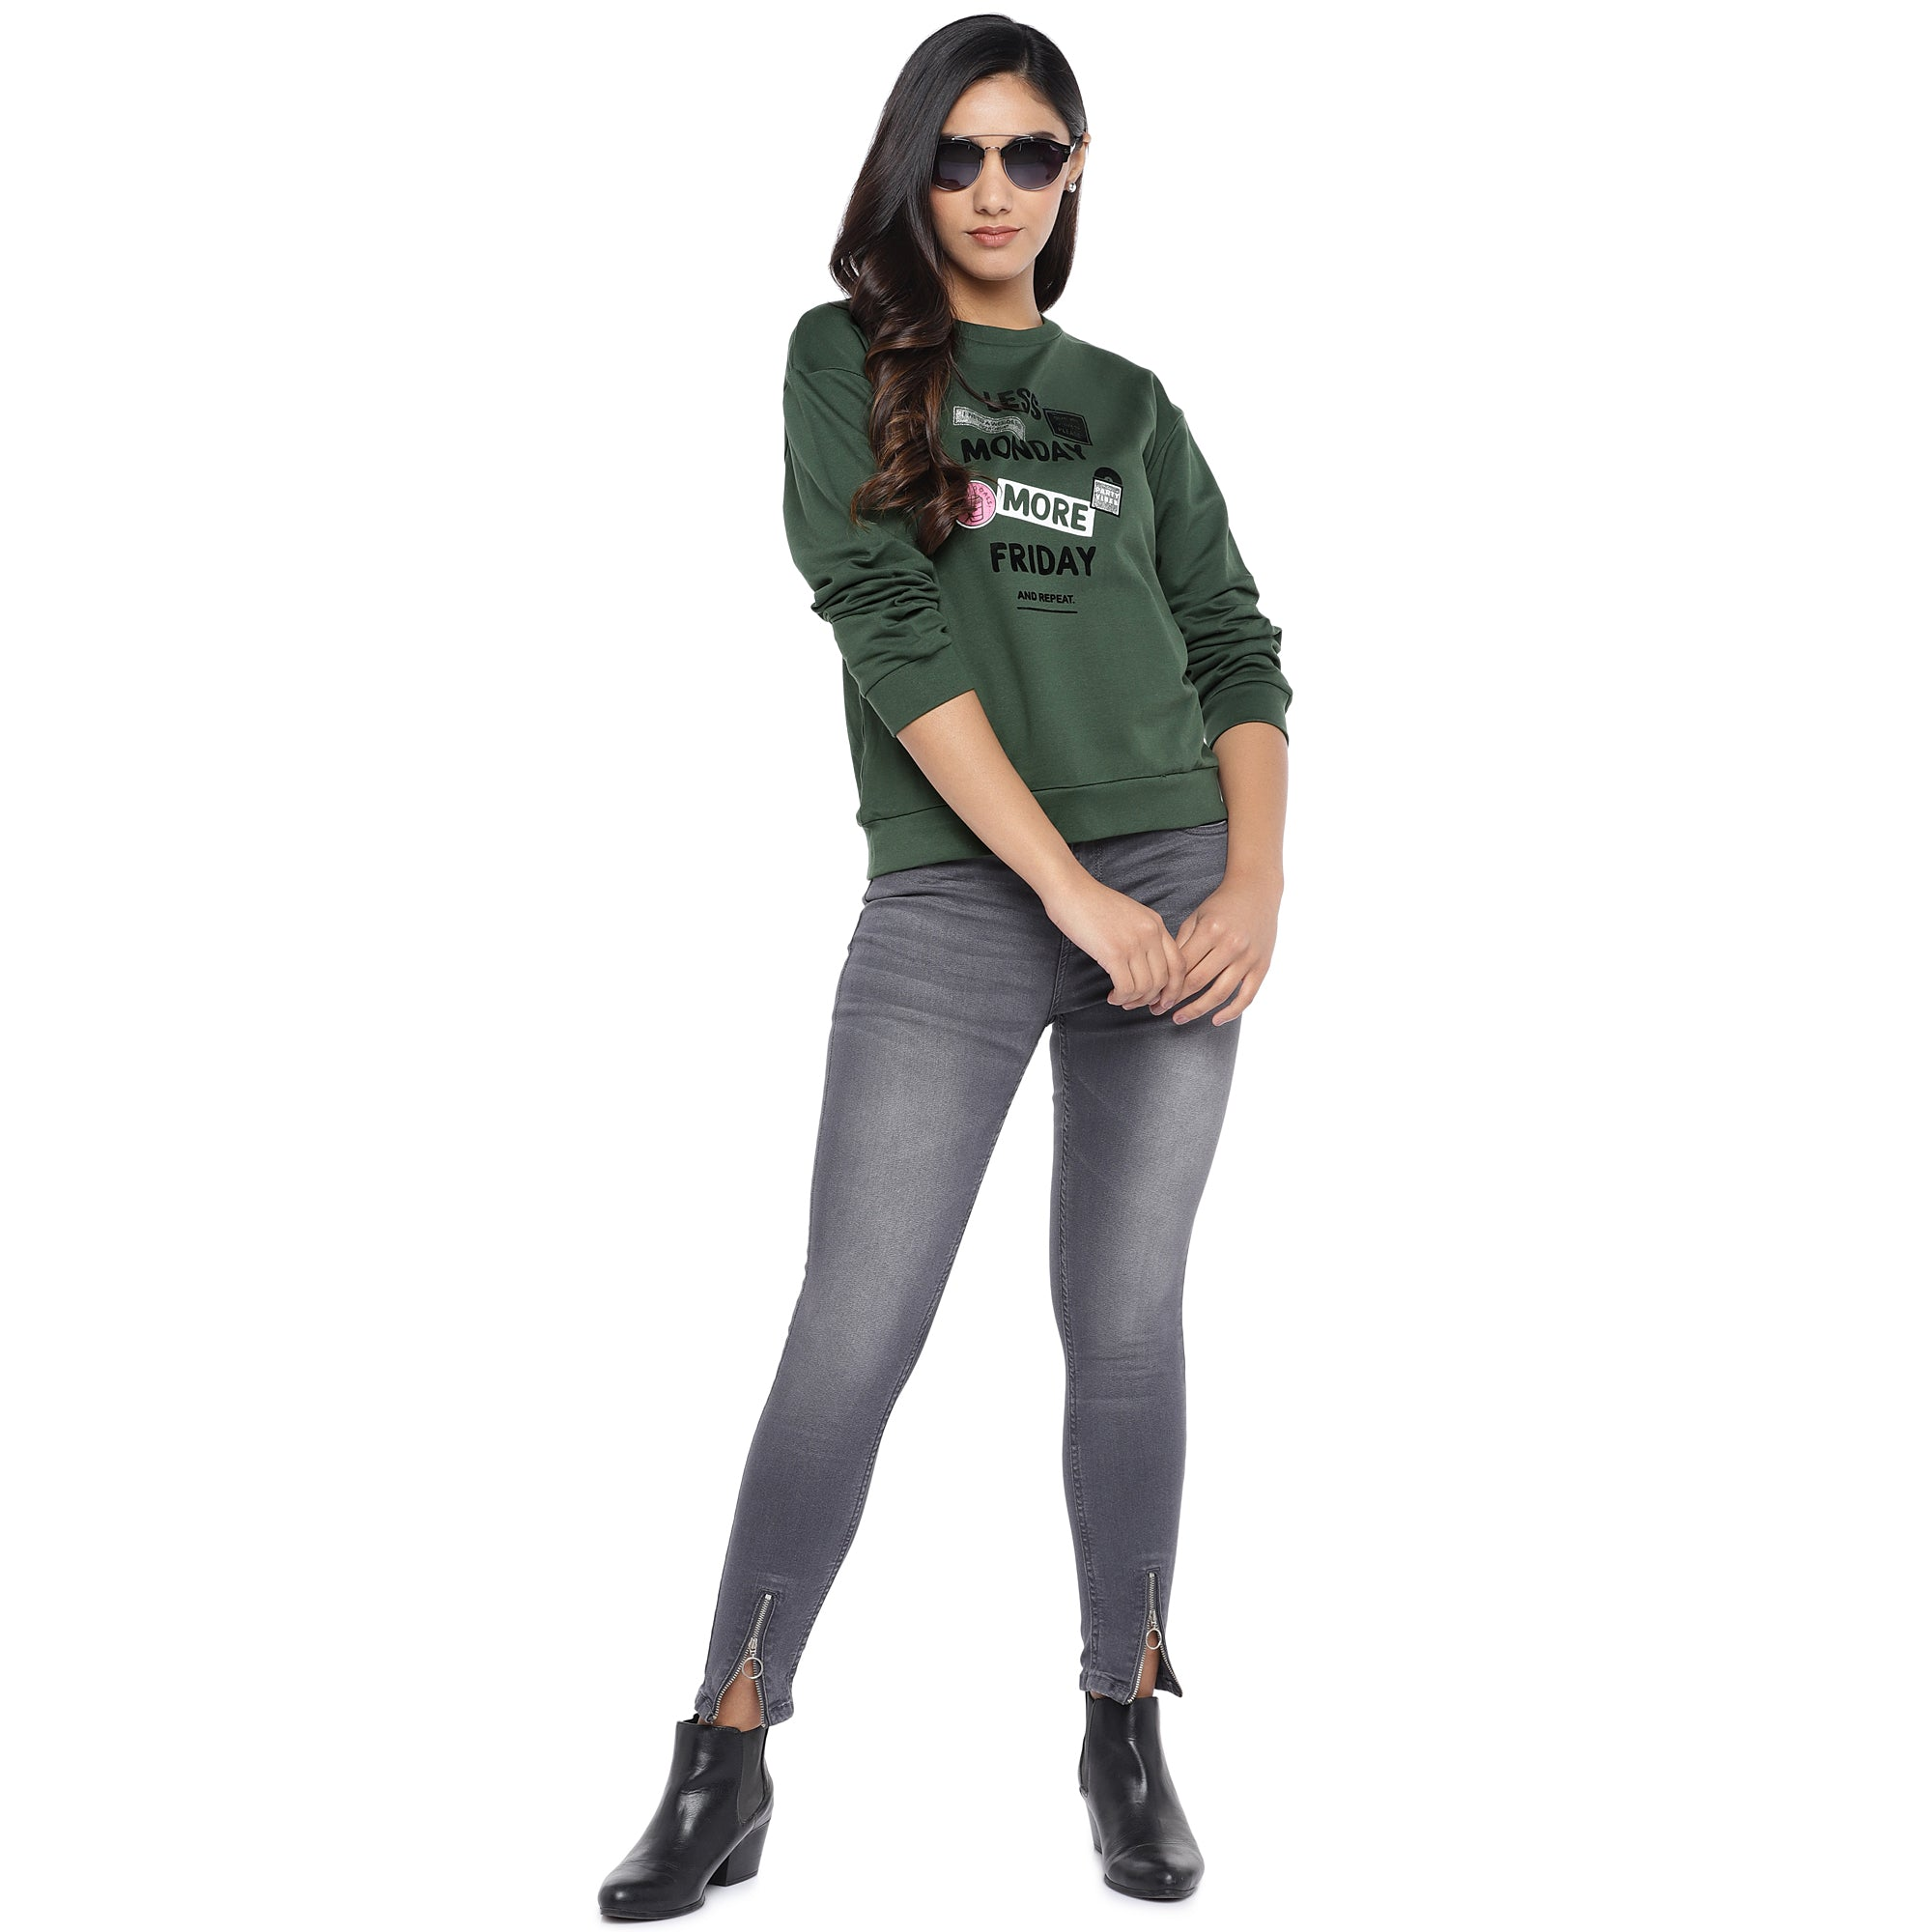 Olive Green & Black Printed Sweatshirt-4